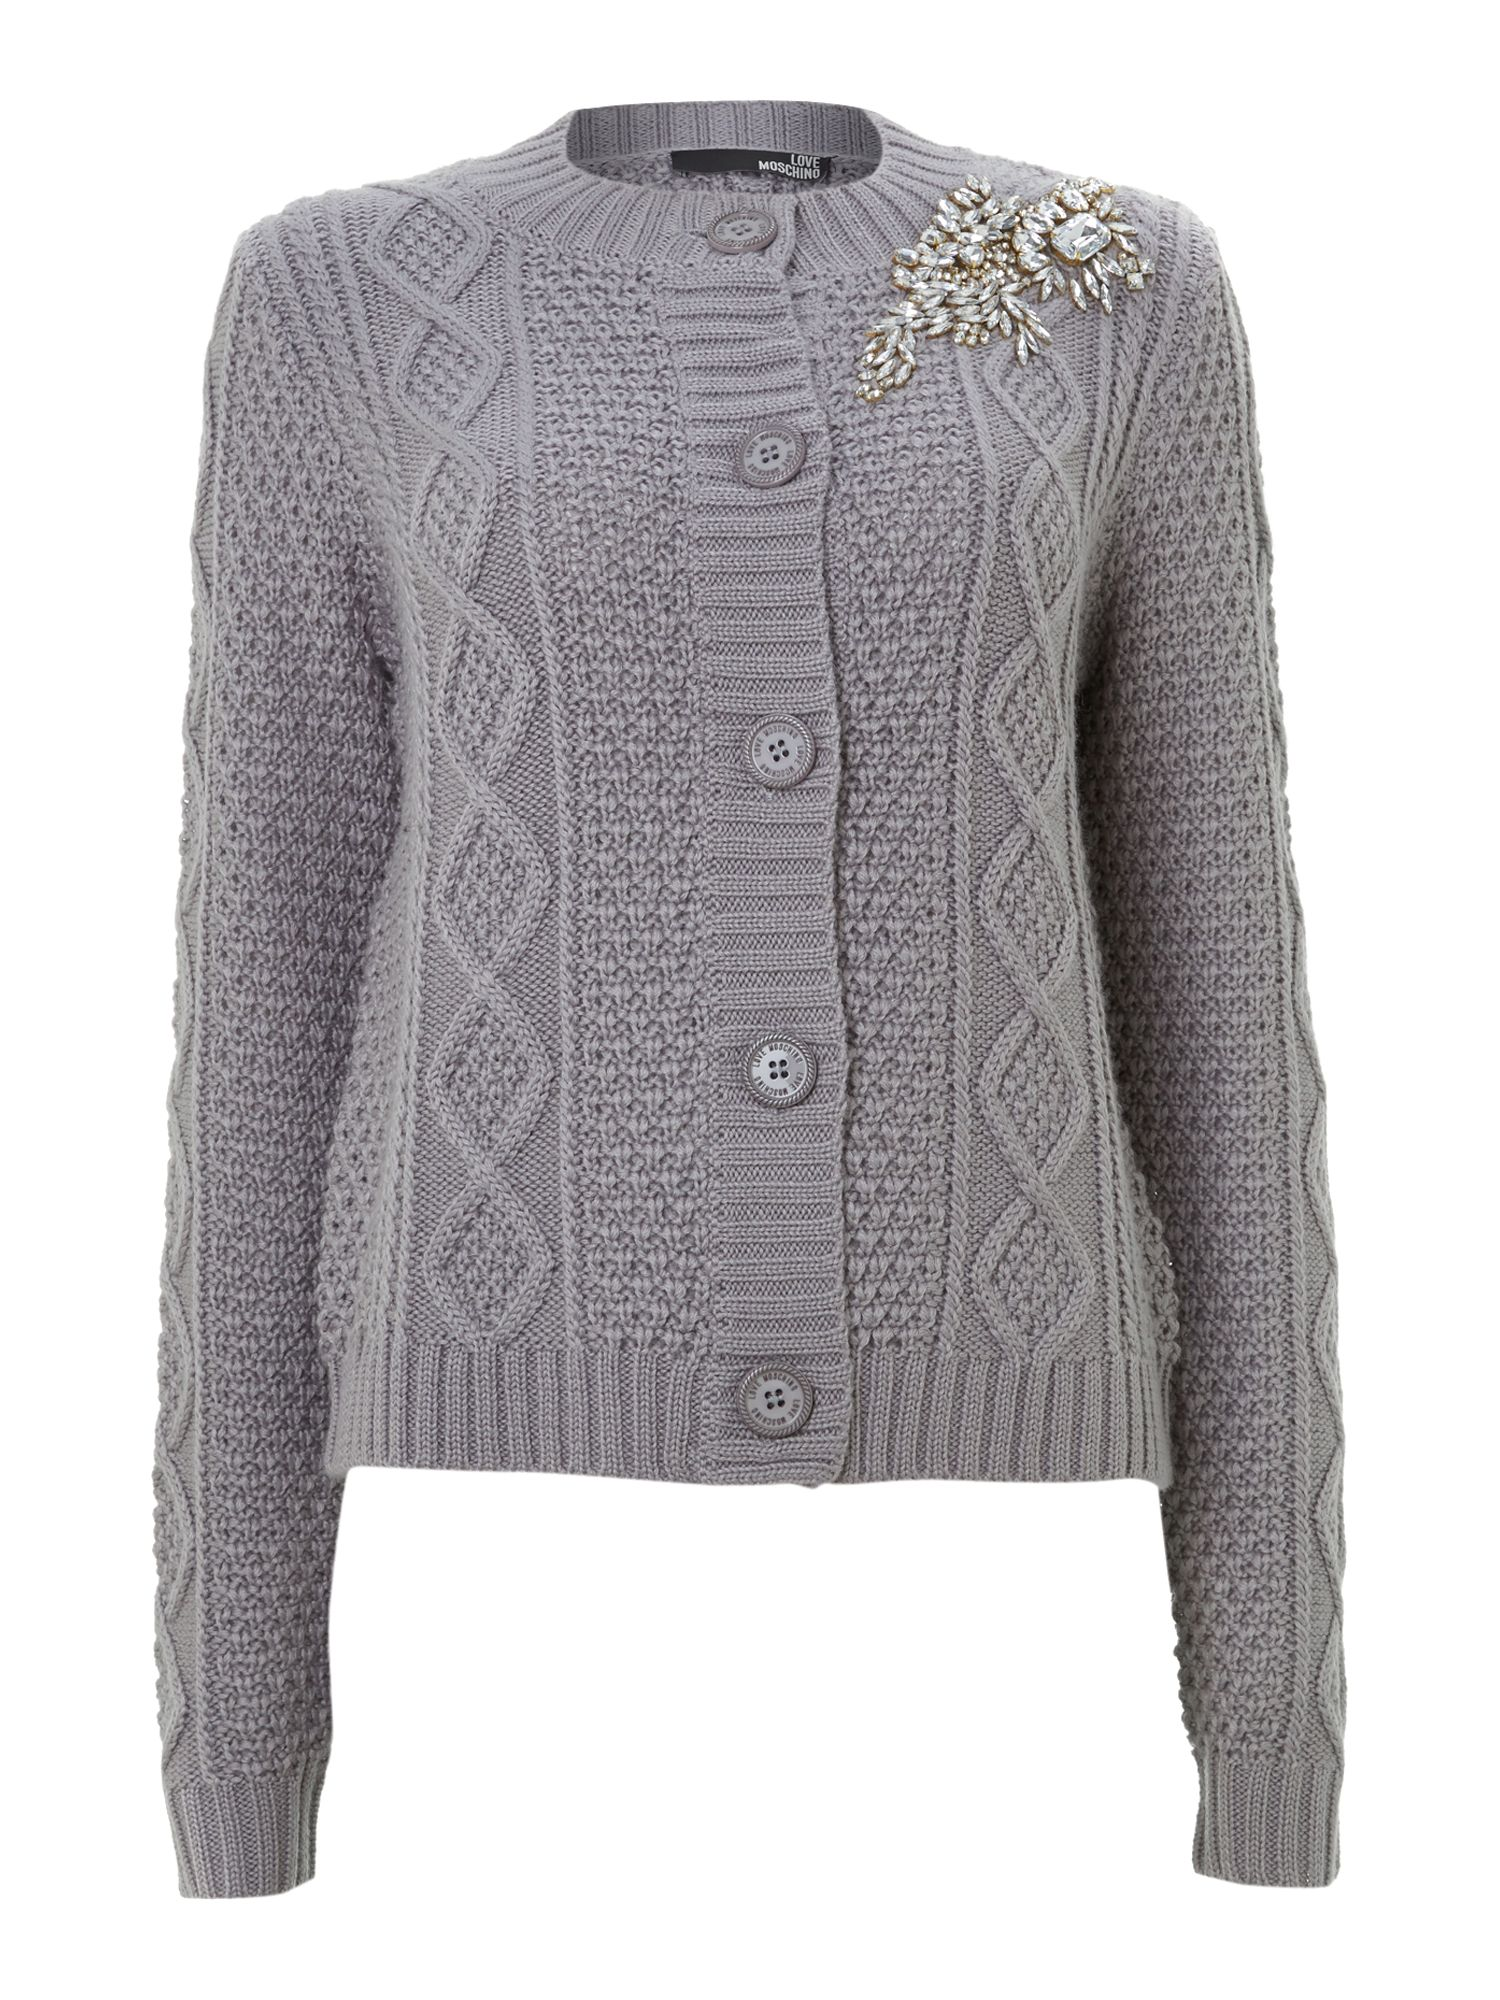 Cable knit button cardigan with embellishment